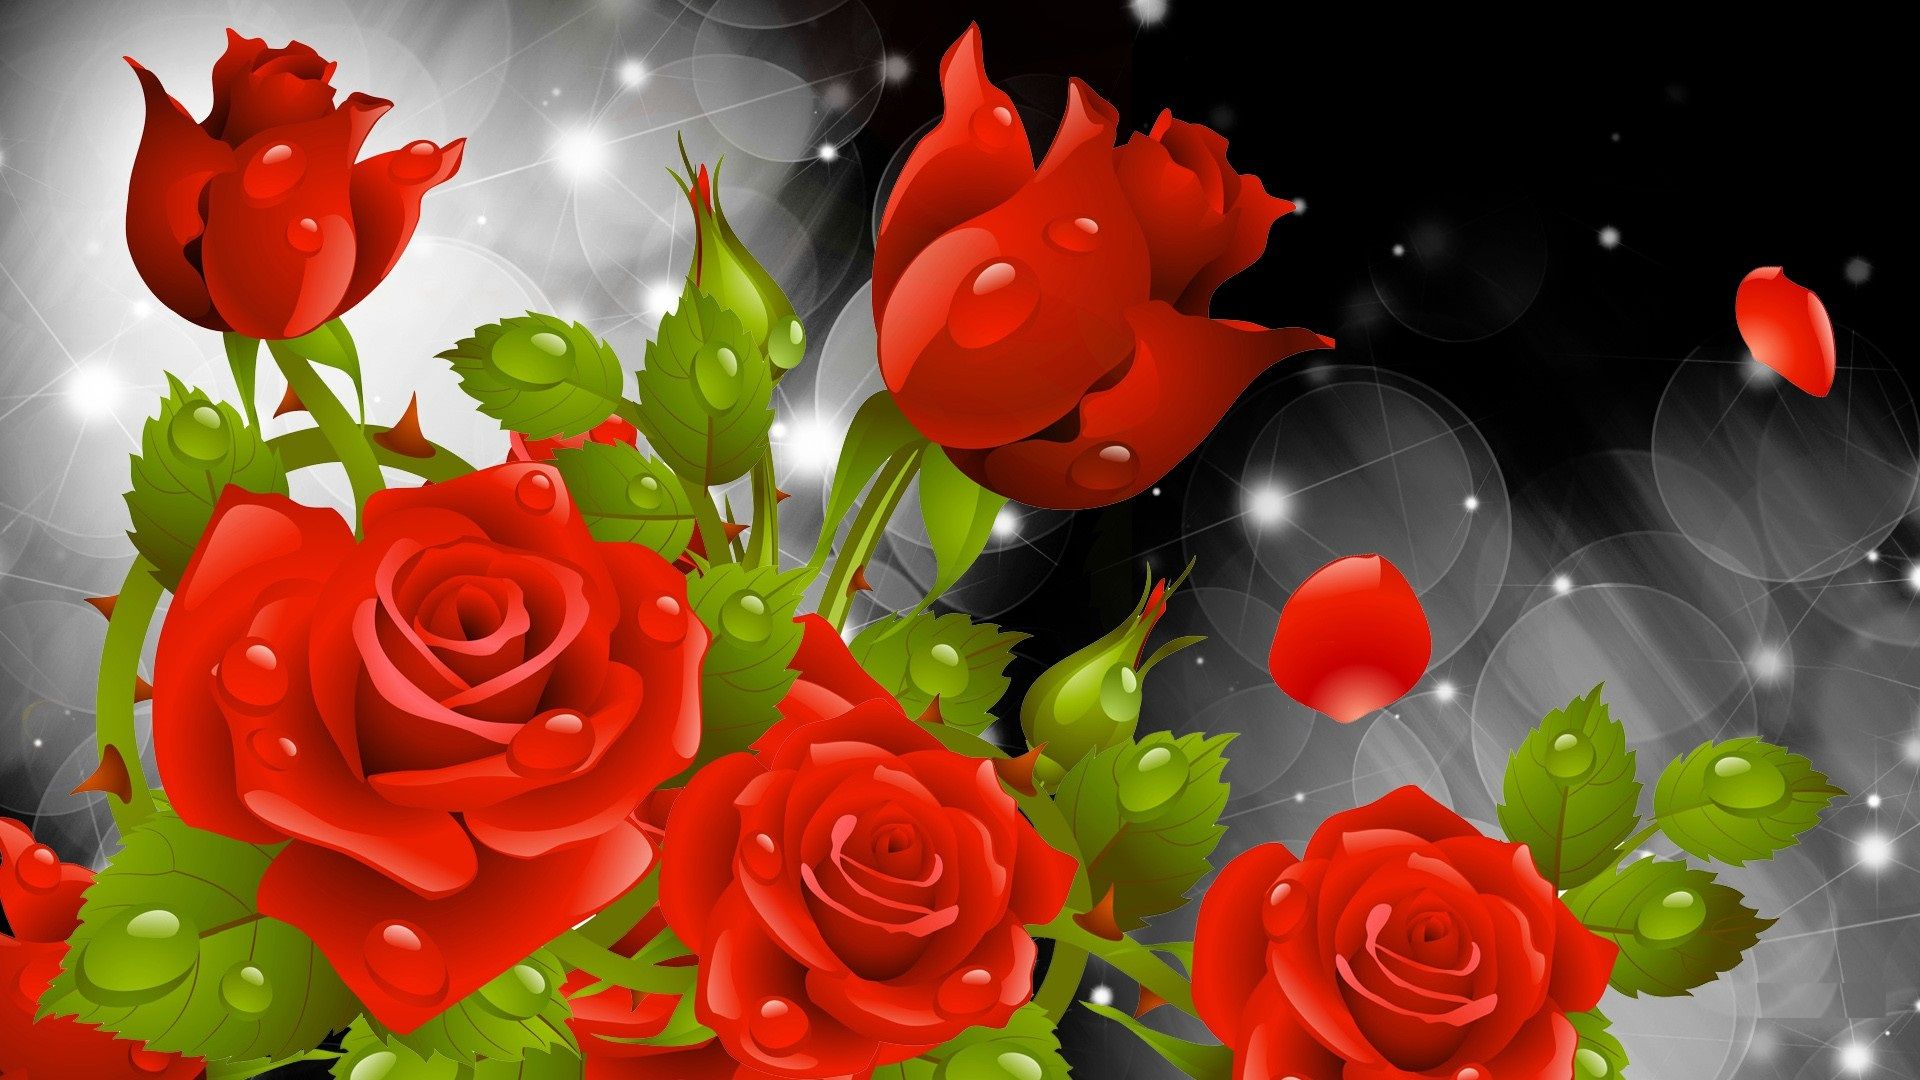 Red Flower Wallpapers Phone Rose flower wallpaper, Red